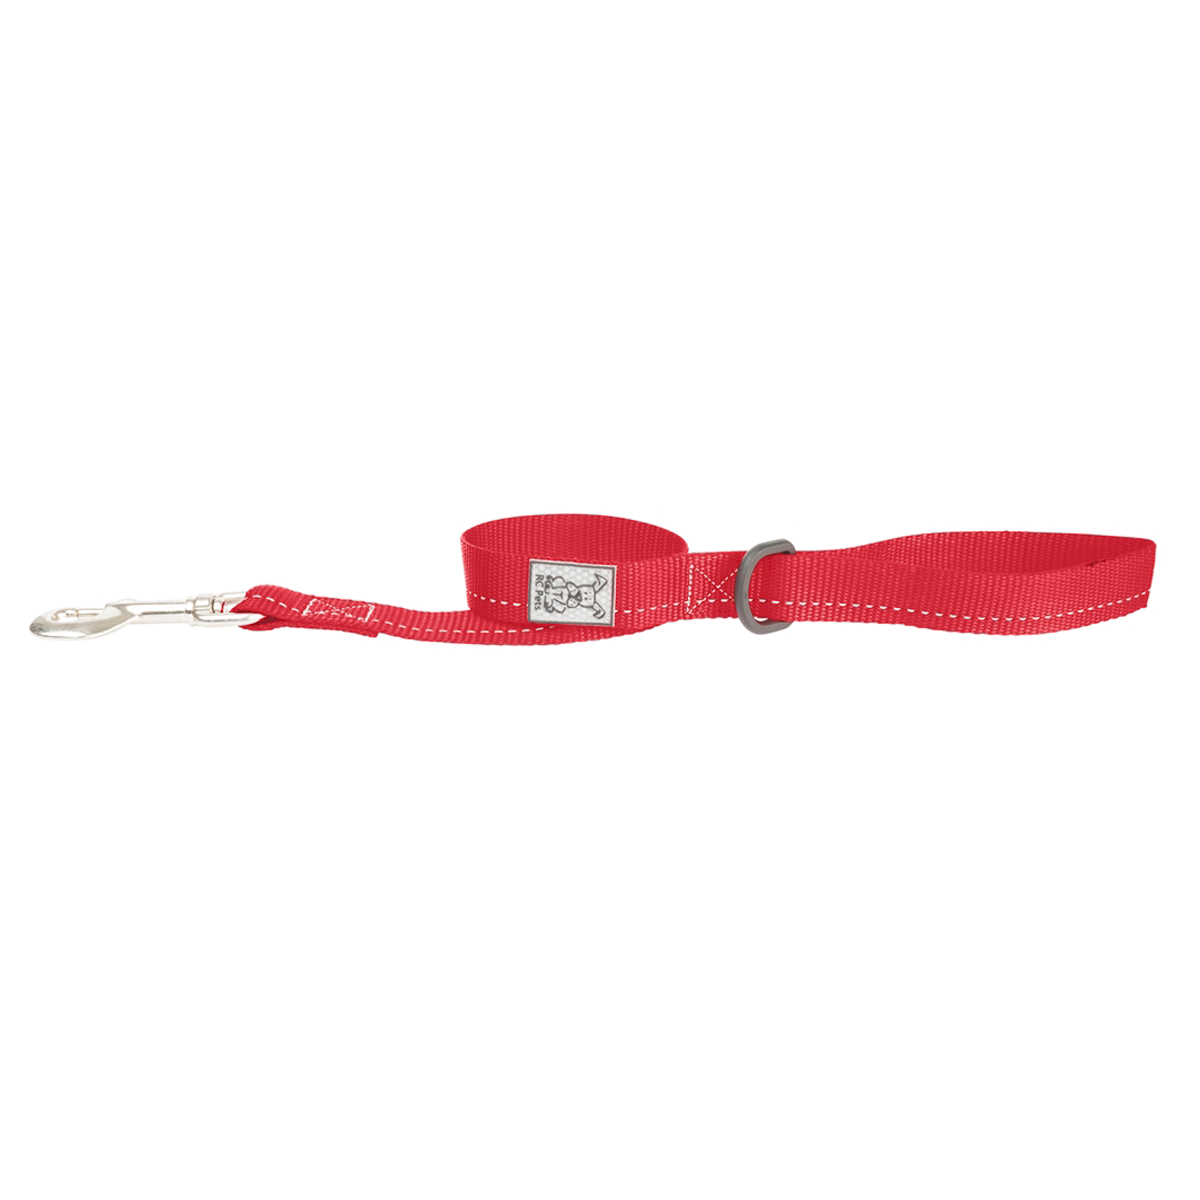 Primary City Dog Leash - Red